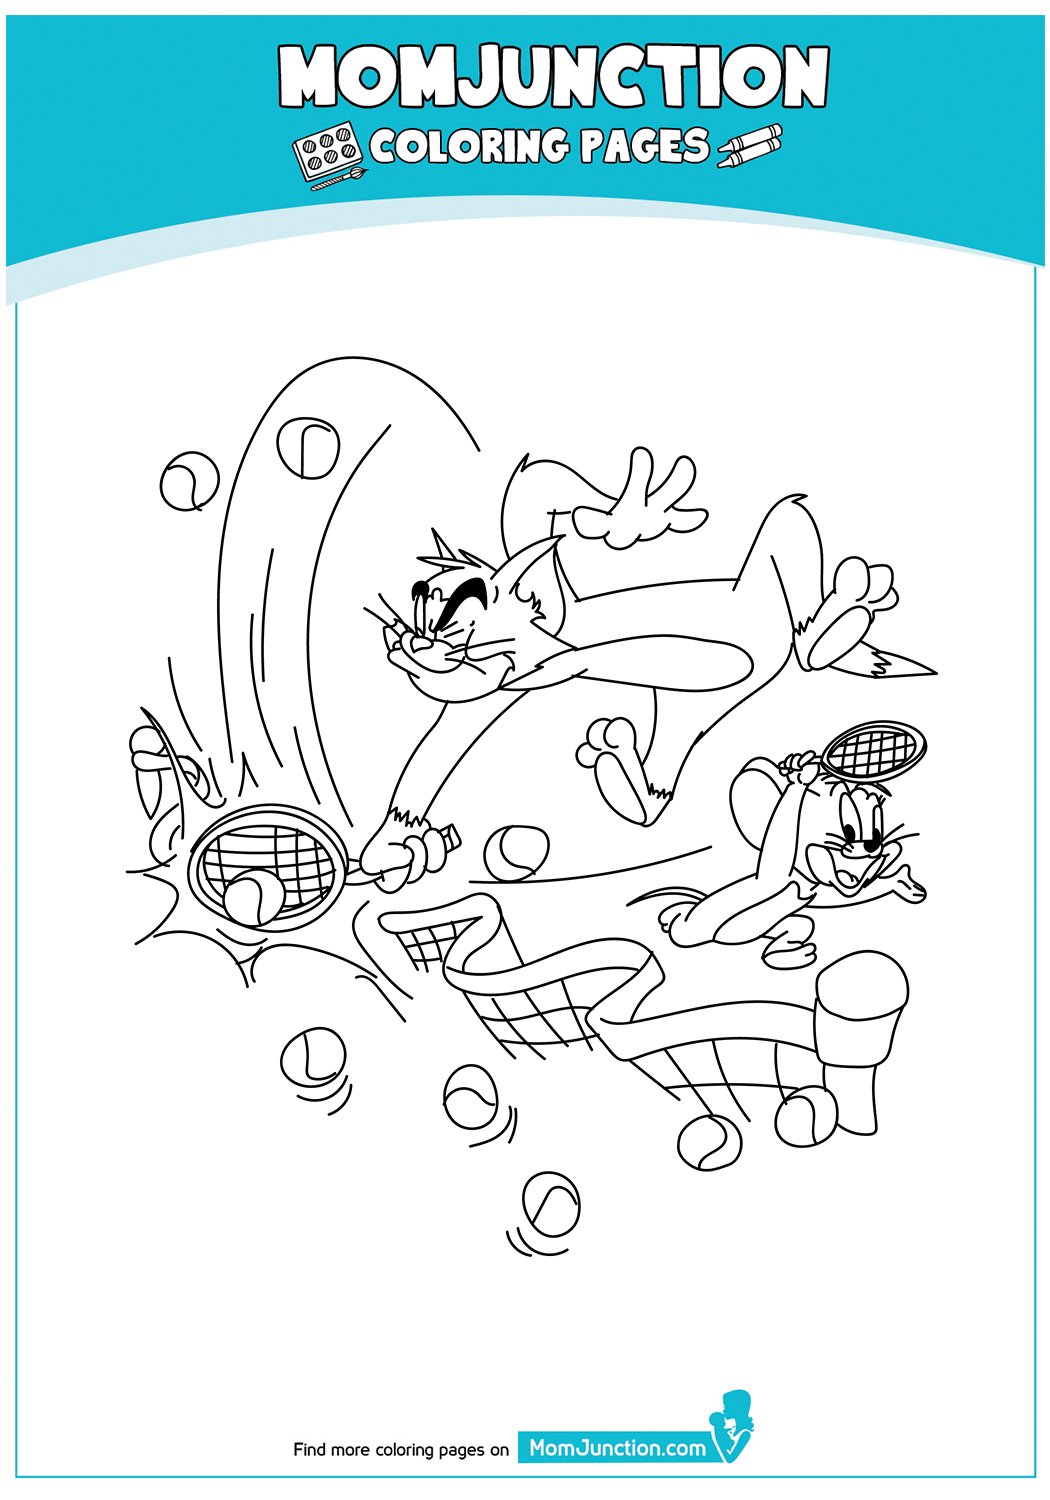 A-Tom-Playing-Tennis-Coloring-Page-17